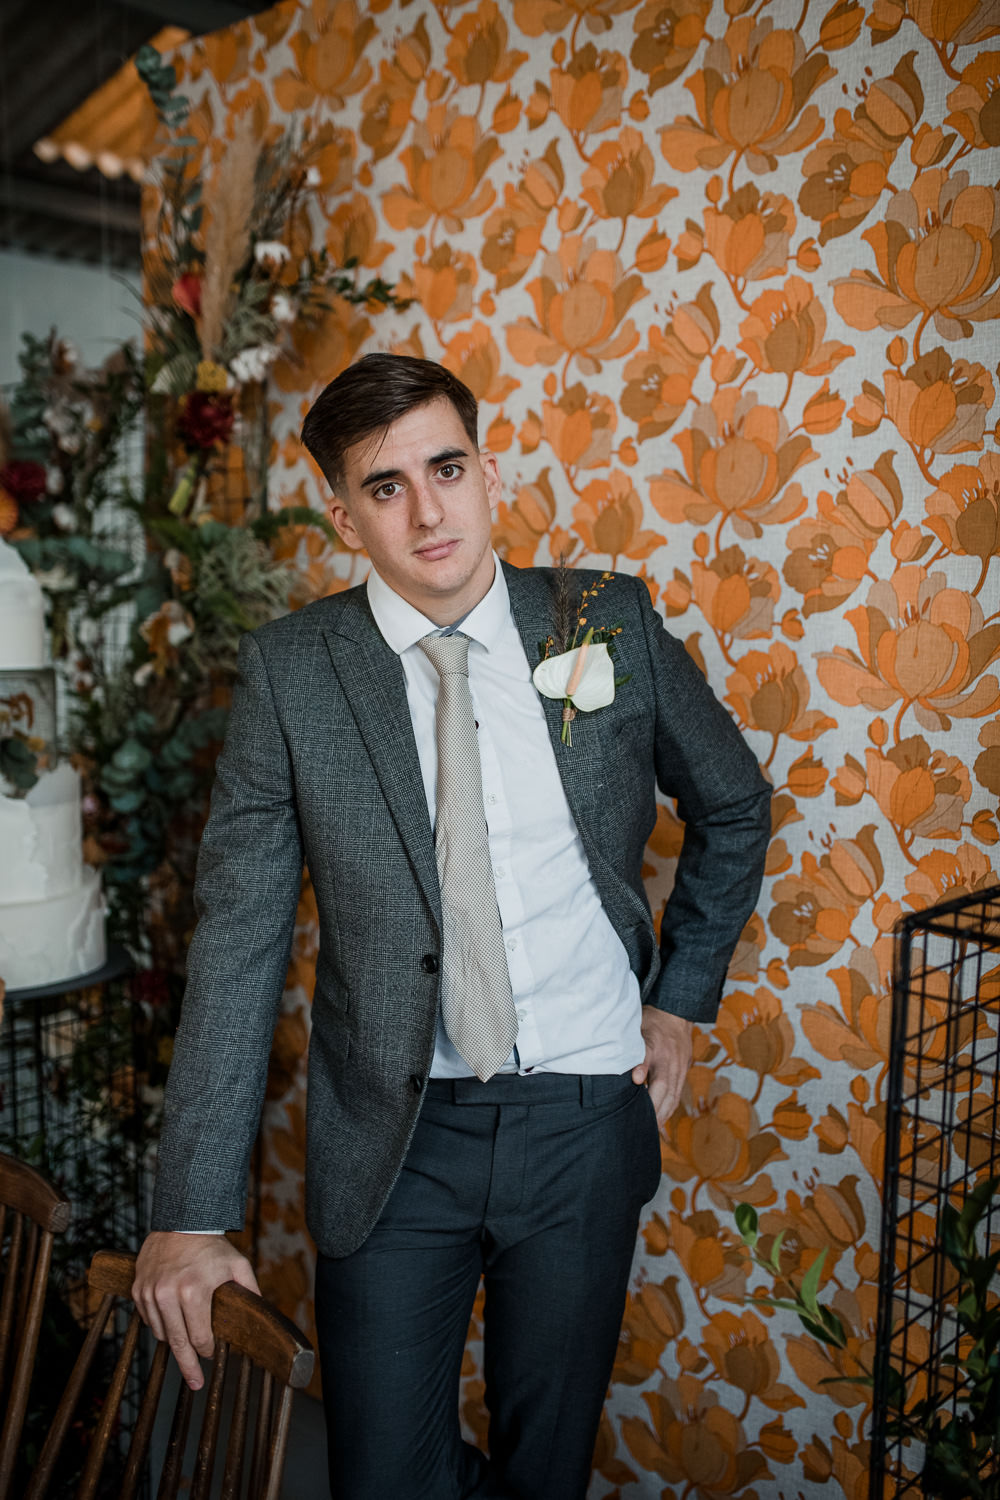 Groom Suit Grey Tie Calla Lily Buttonhole 1970 Retro Mid Century Wedding Ideas Laura Martha Photography